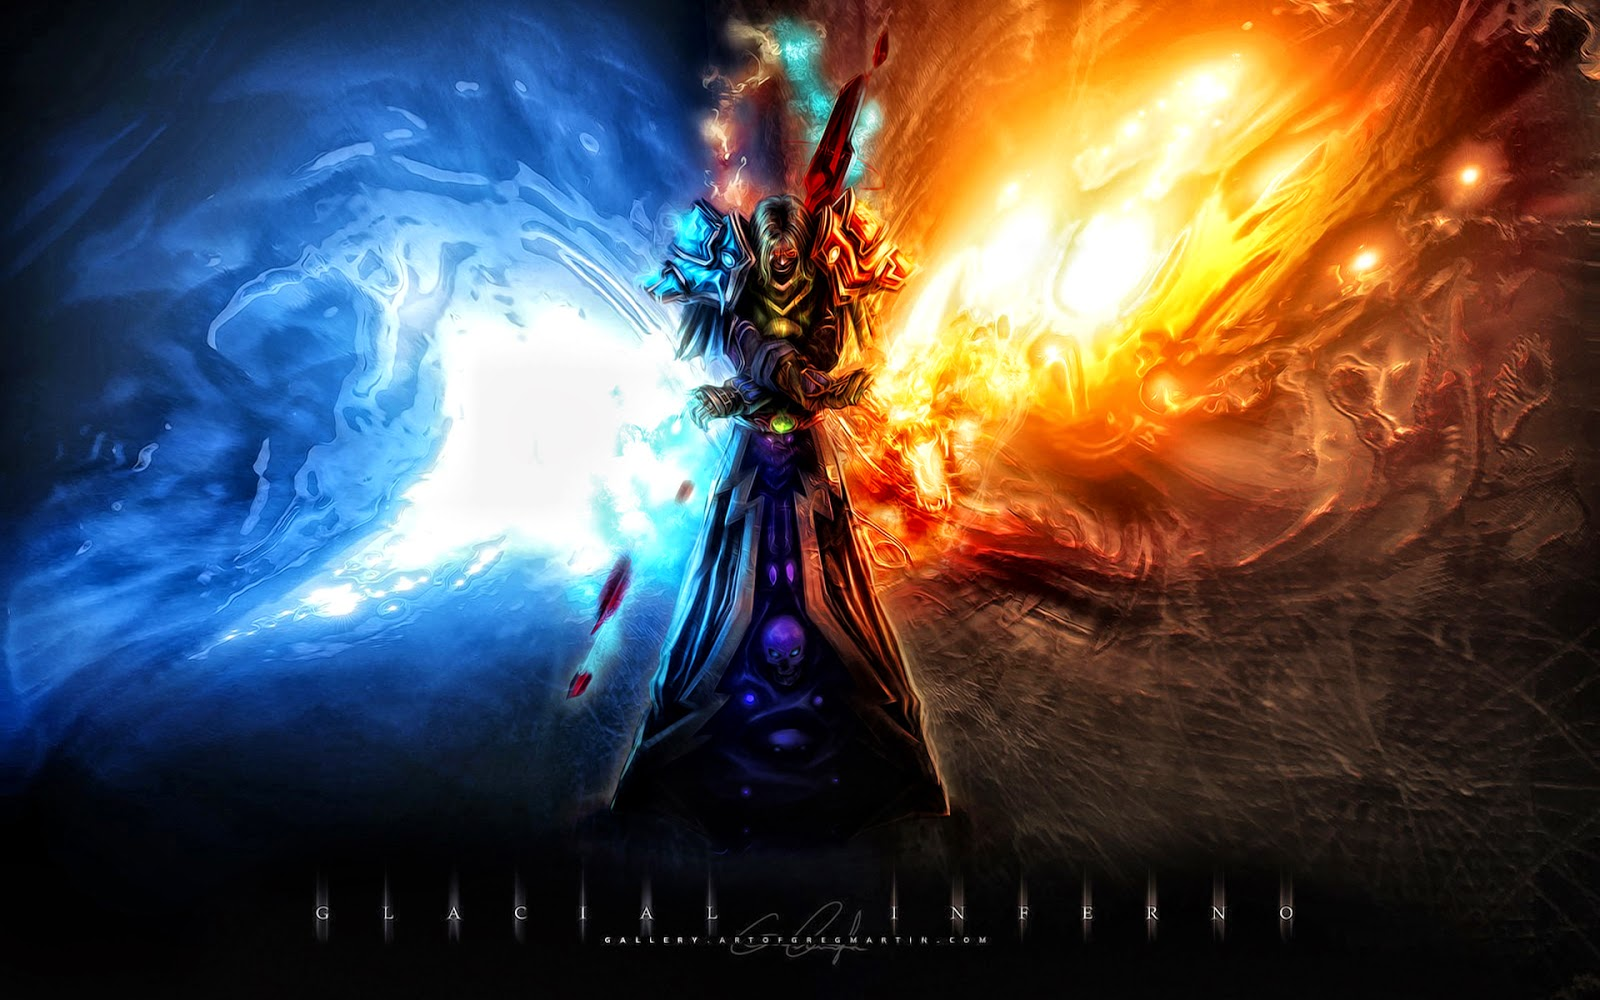 Hd Wallpapers Blog: Cool Fire Wallpapers